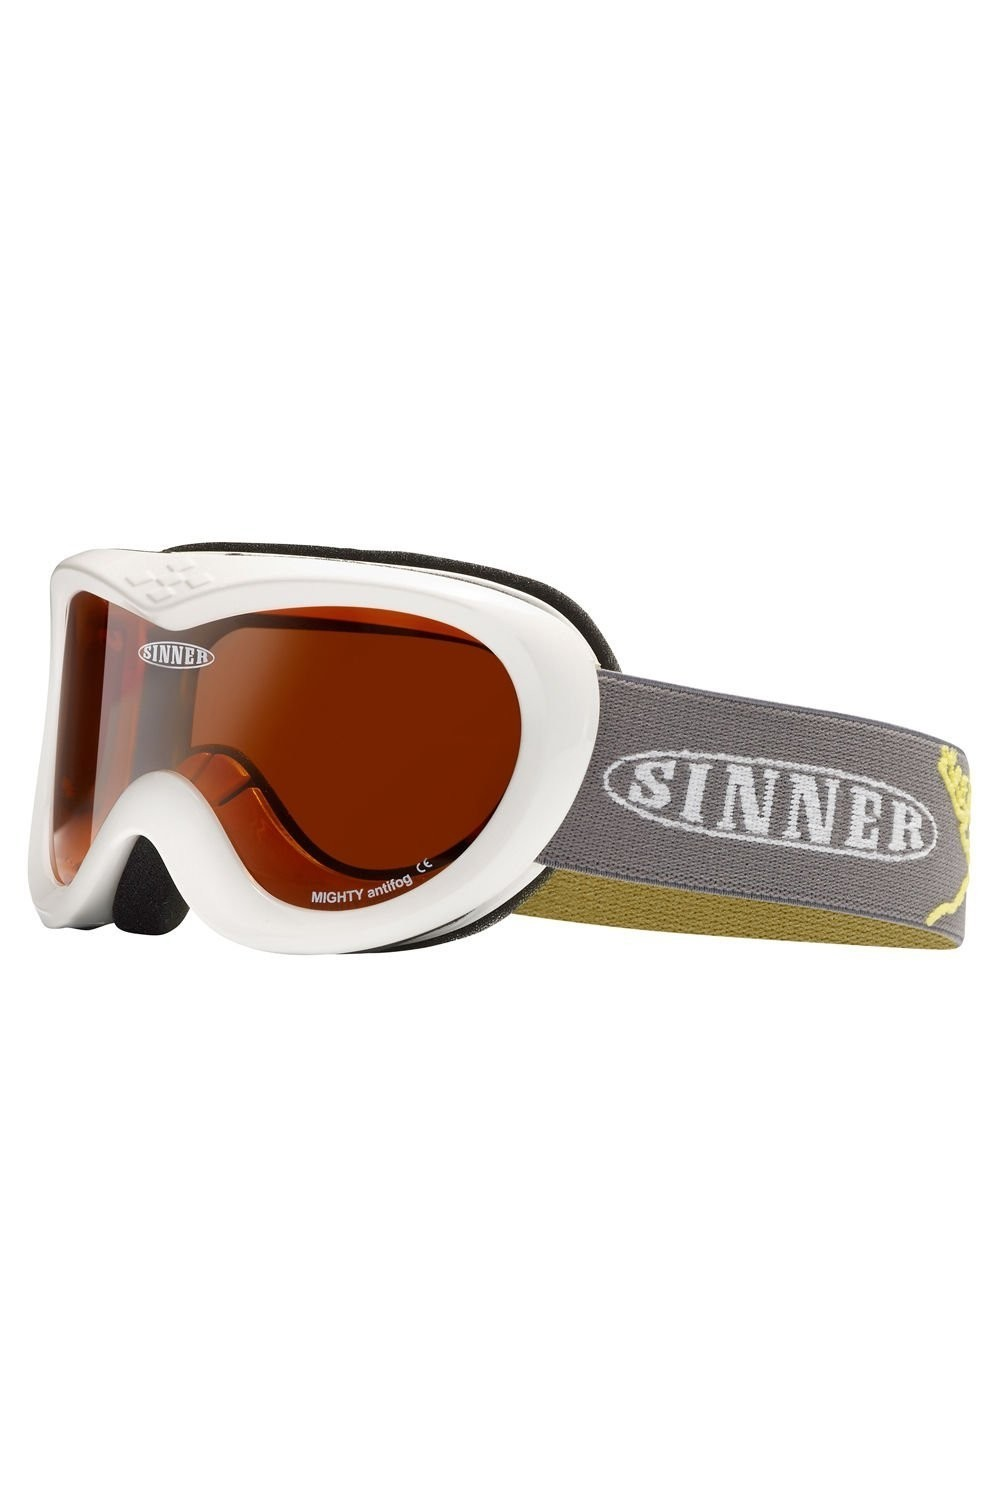 ​Sinner kinder goggle Mighty shinny white